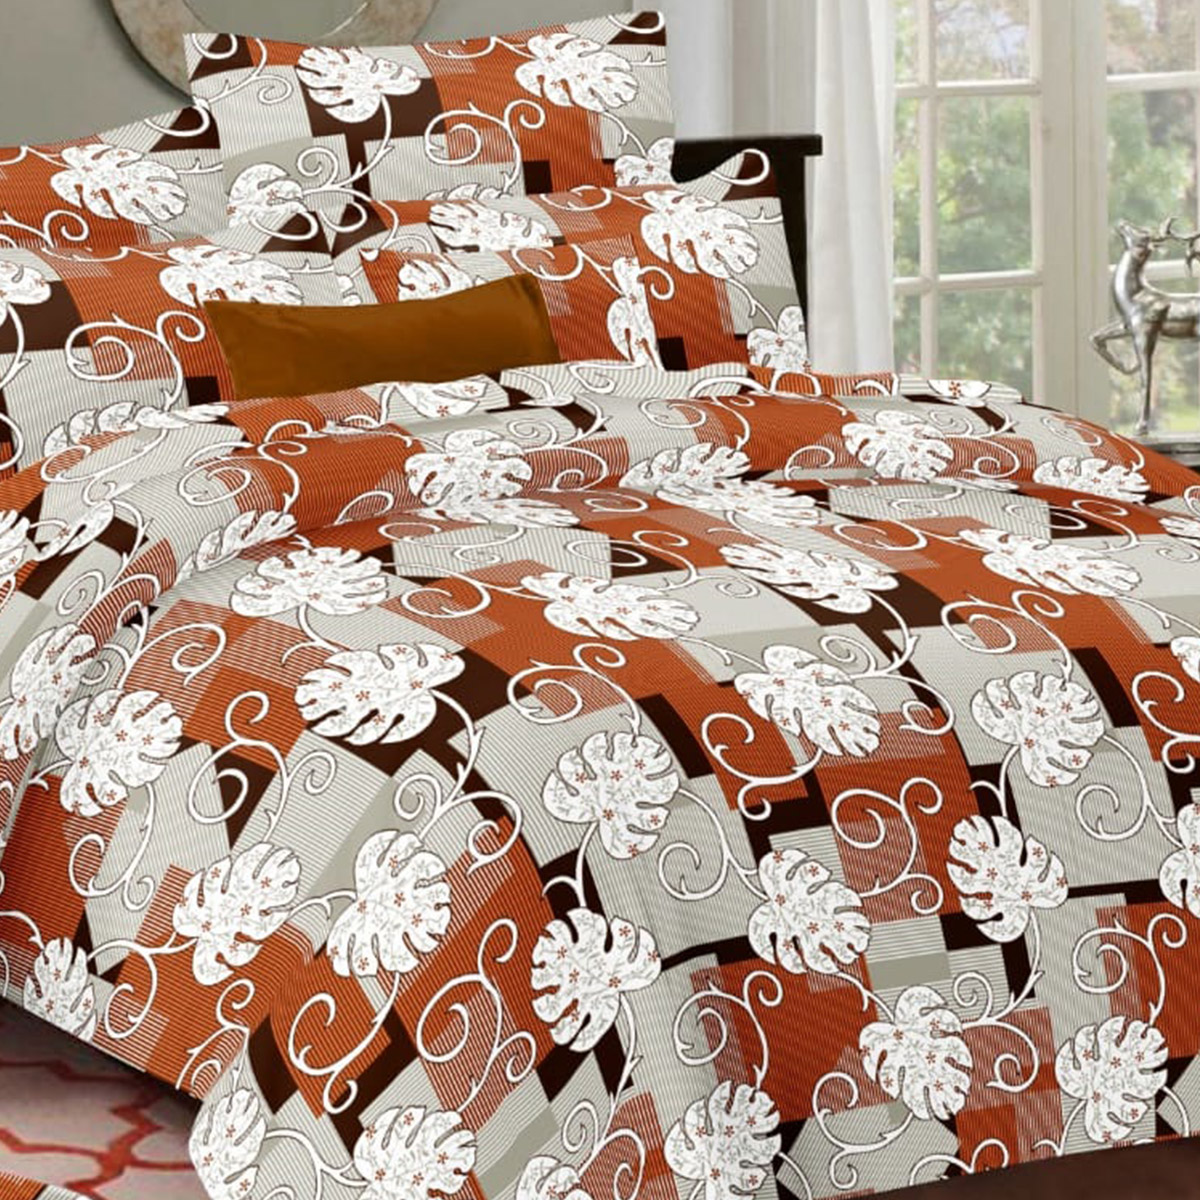 Hypnotic Rust Orange Colored Floral Printed Cotton Double Bedsheet With Pillow Cover